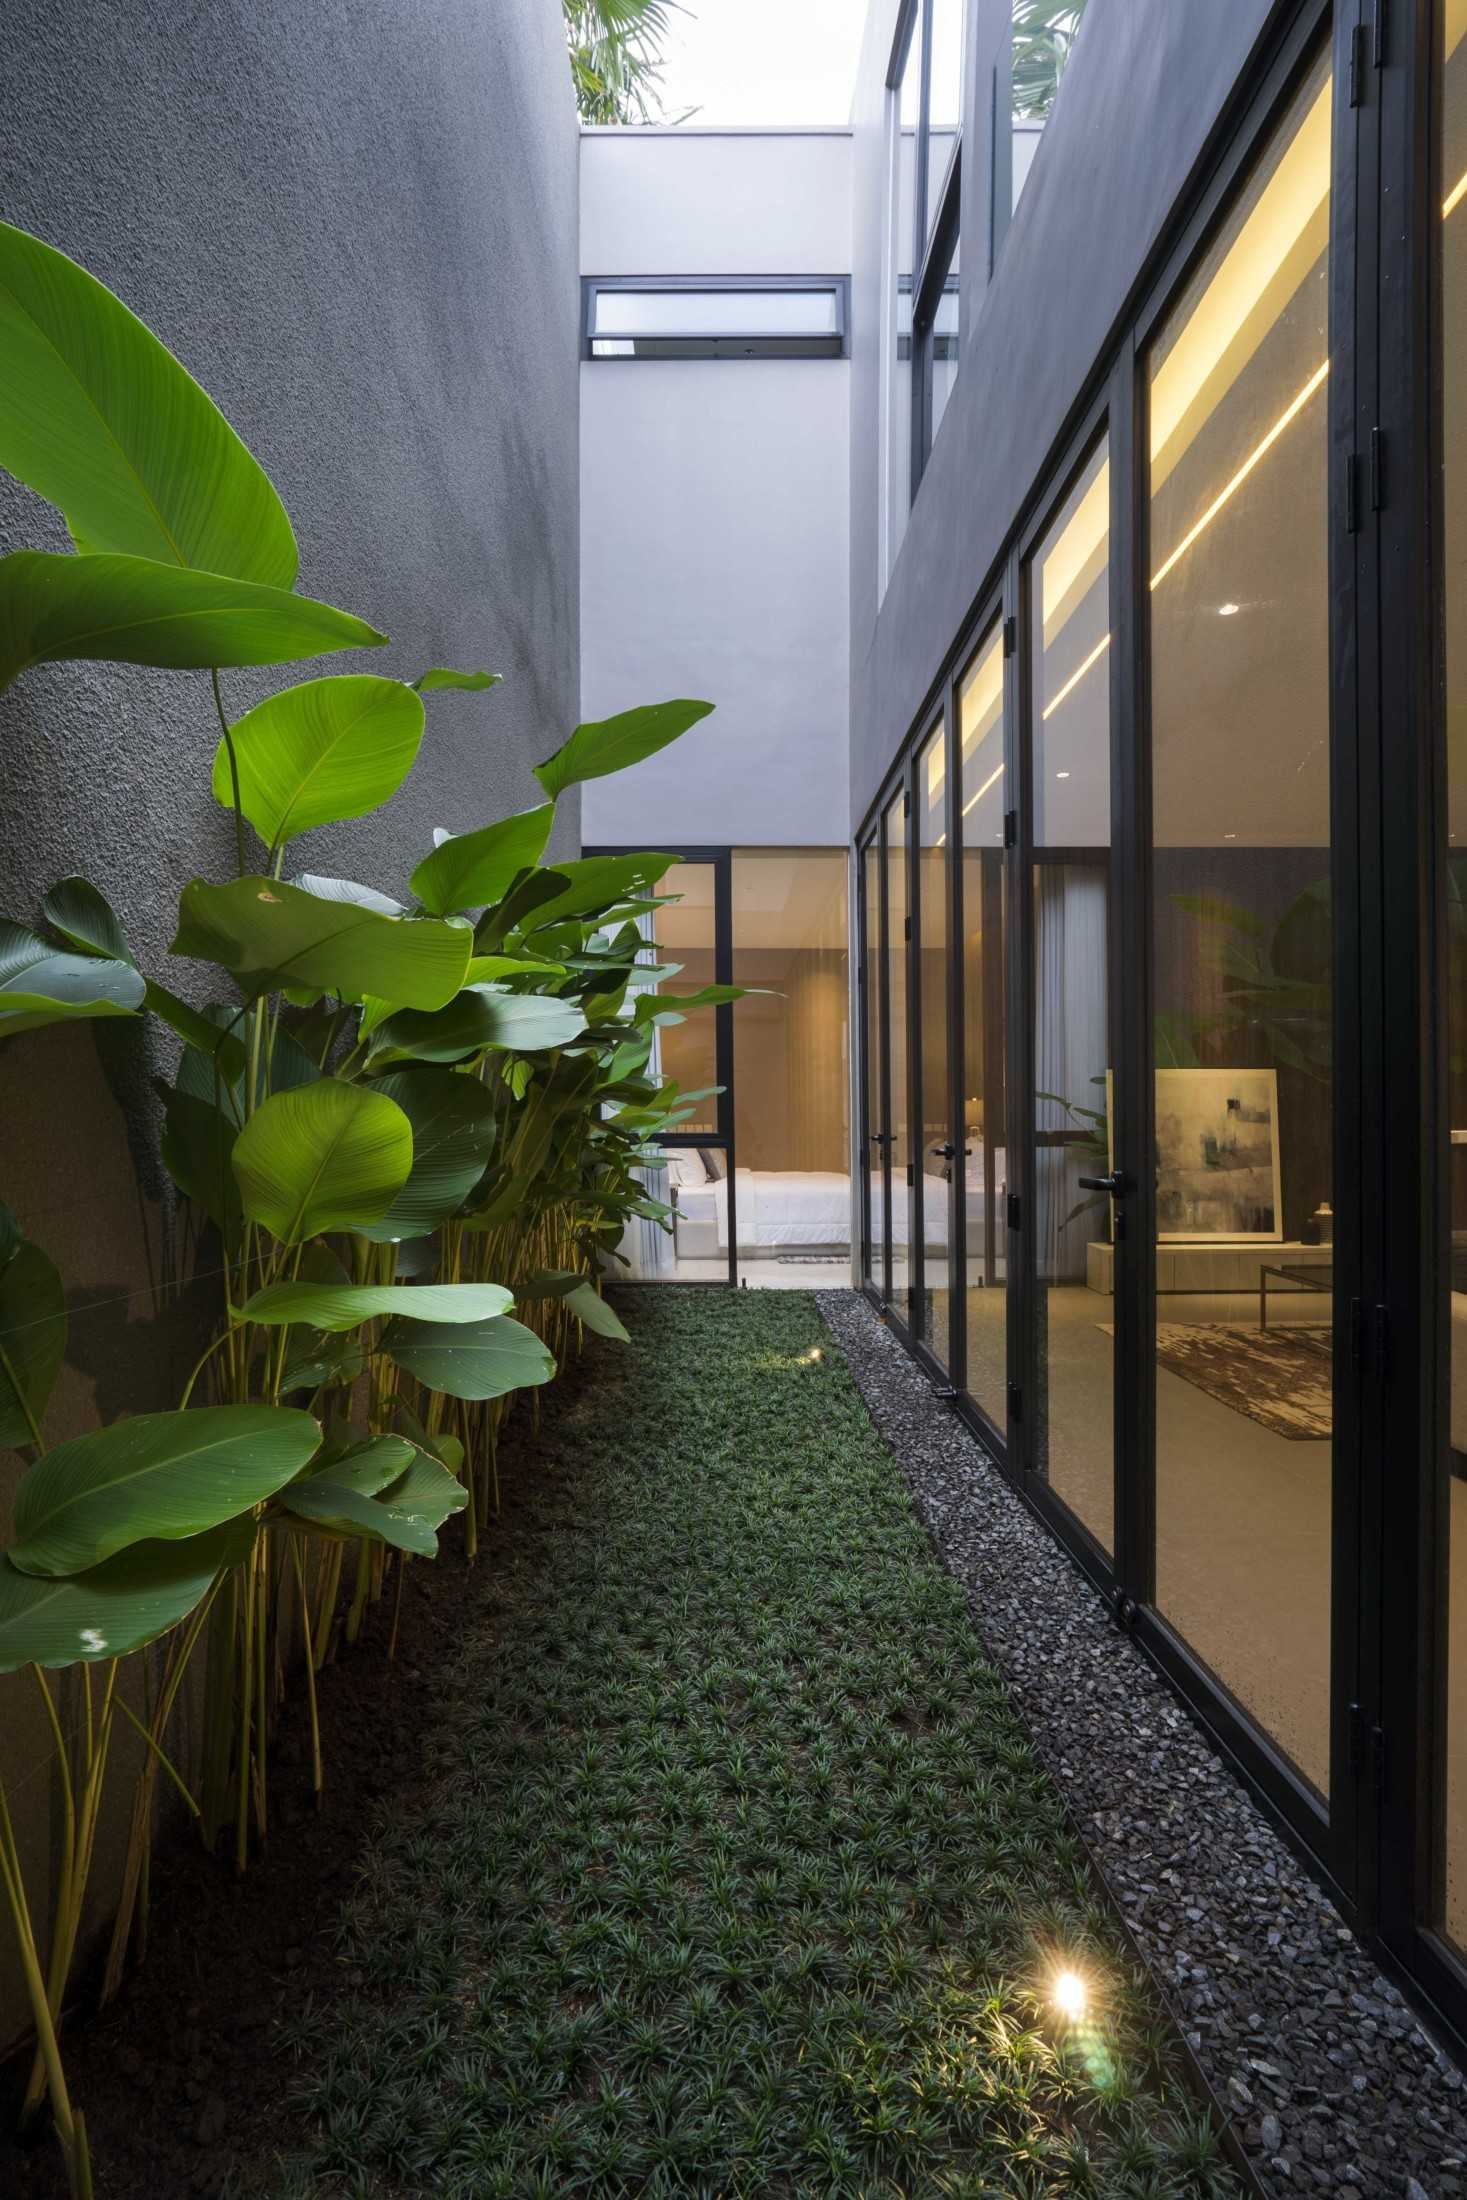 Simple Projects Architecture 'hhh' House Surabaya, Kota Sby, Jawa Timur, Indonesia  Simple-Projects-Architecture-Hhh-House  75058